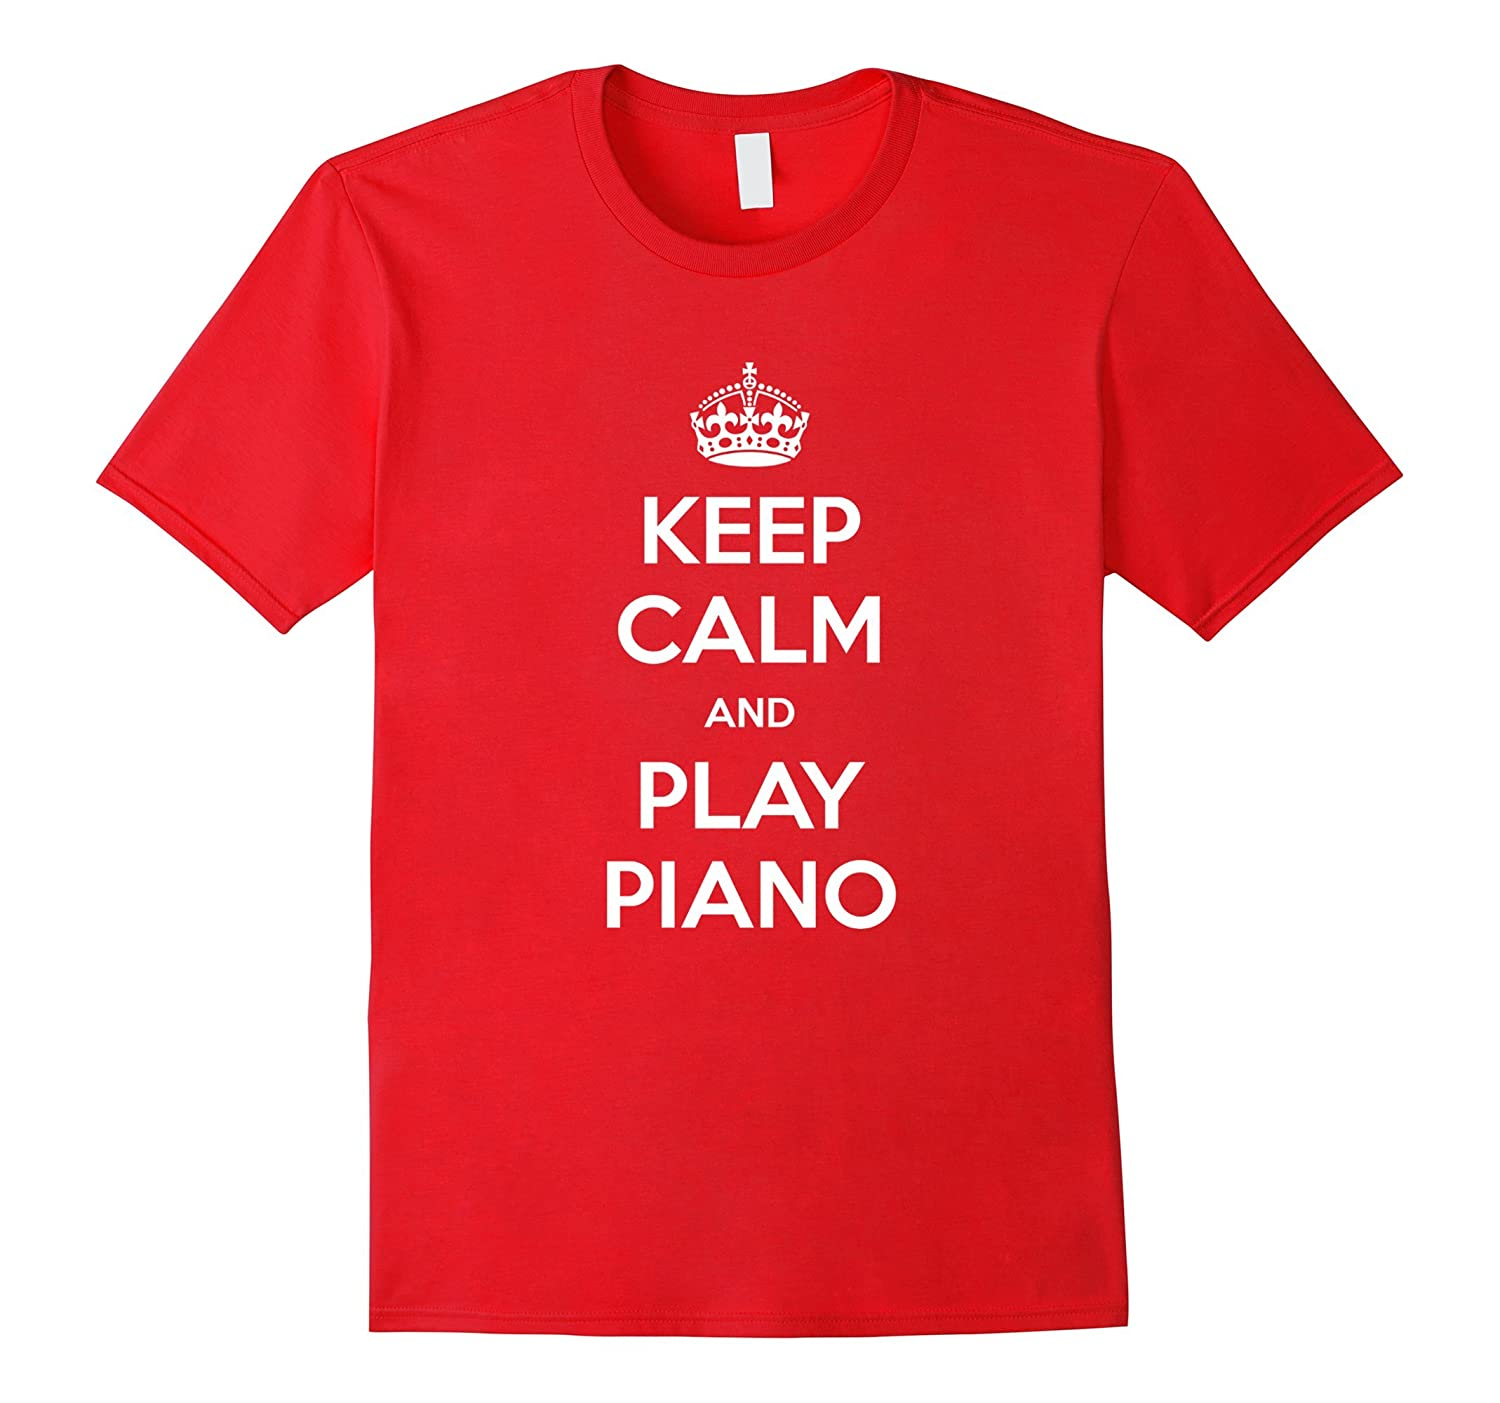 eb78d3a5a ... Dad Papa Fathers Day T-Shirt-RT. Keep Calm and Play Piano T-Shirt -  Multiple fits and colors-RT